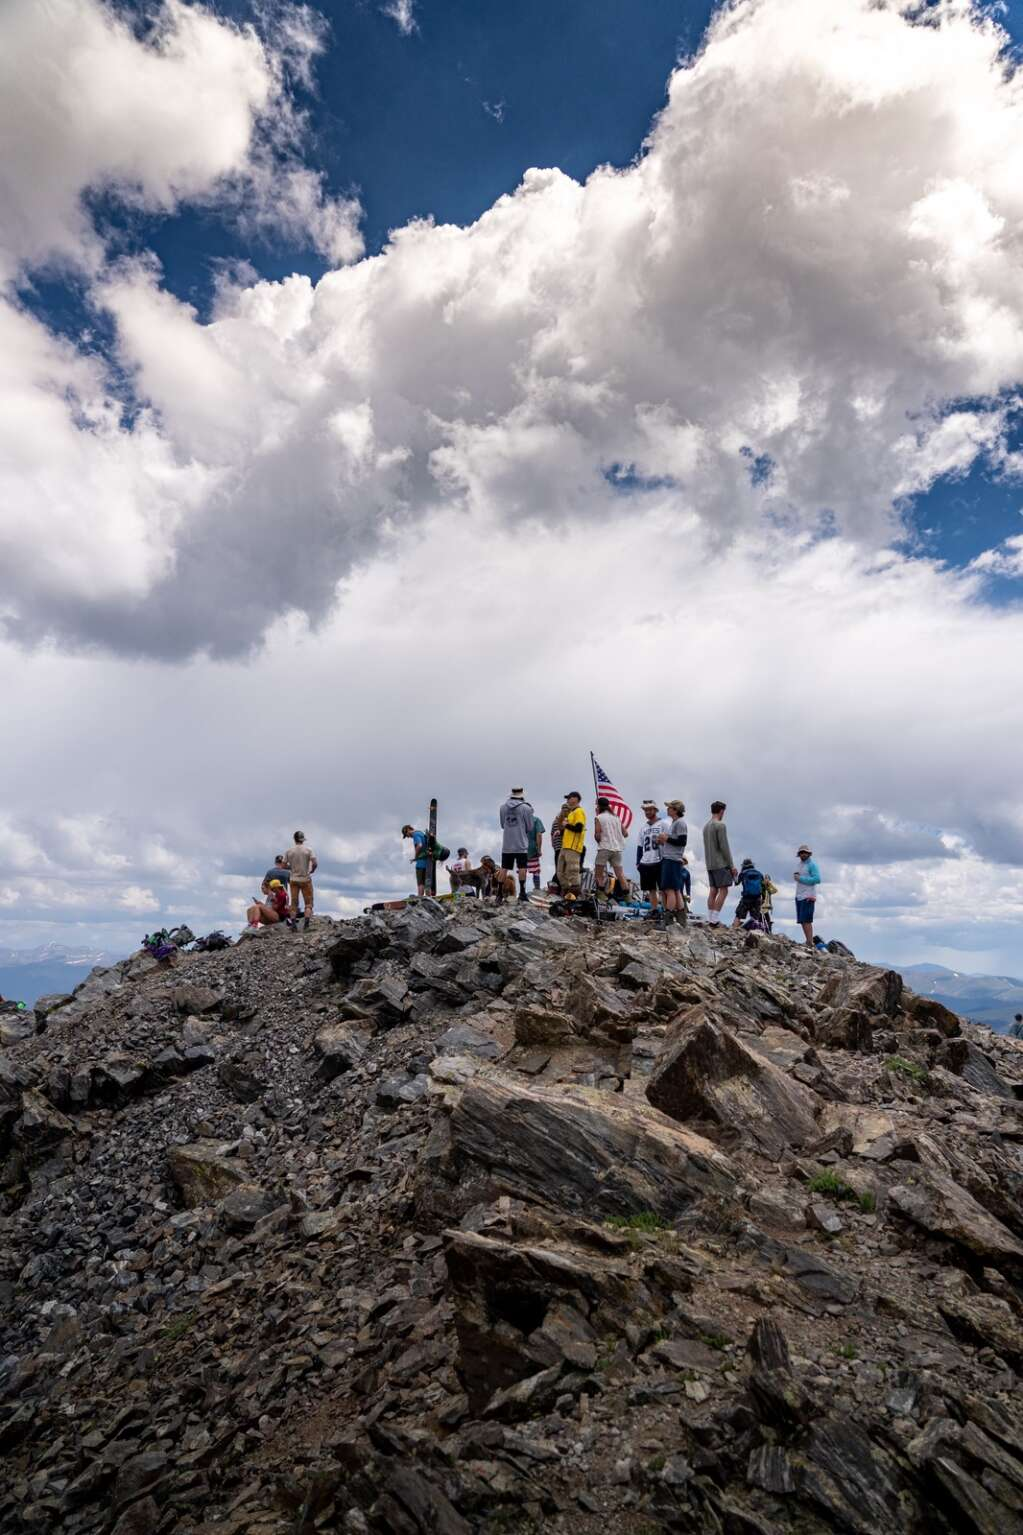 Skiers and riders celebrate Independence Day high up in the Tenmile Range at the summit of Peak 10 at Sunday's fourth annual Peak 10 Classic. | Photo by Sage Vogt